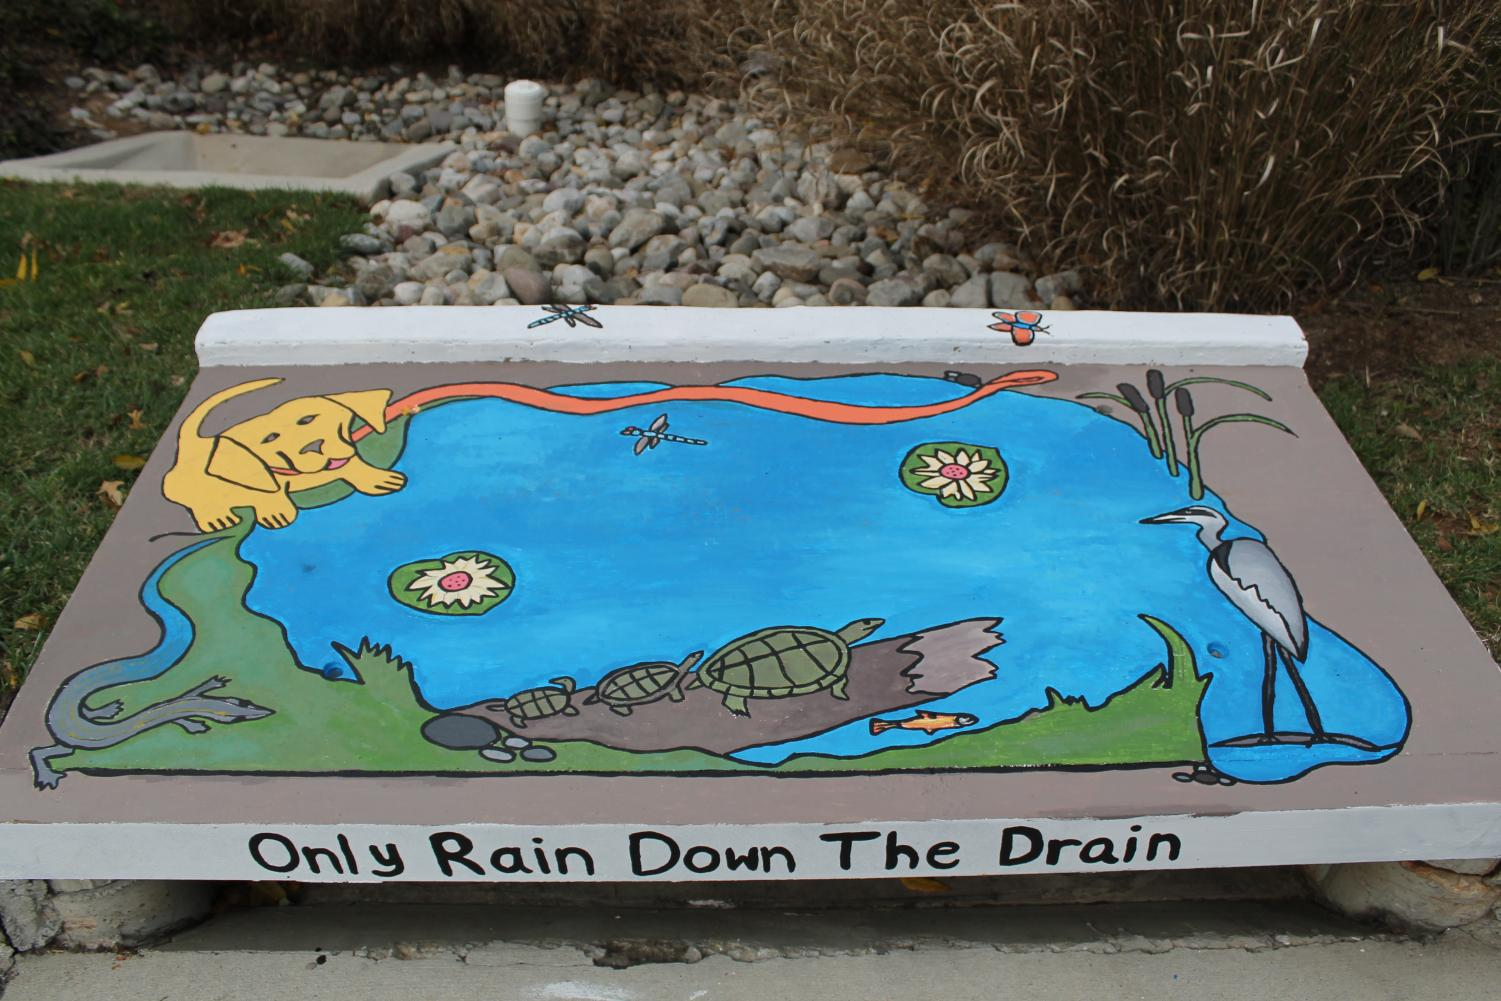 A previous storm drain art contest winner reminds individuals to be mindful about what goes down the drain. The contest has been going on for multiple years and features a variety of categories that contestants can choose to enter. Photo courtesy Montgomery County Department of Environmental Protection.